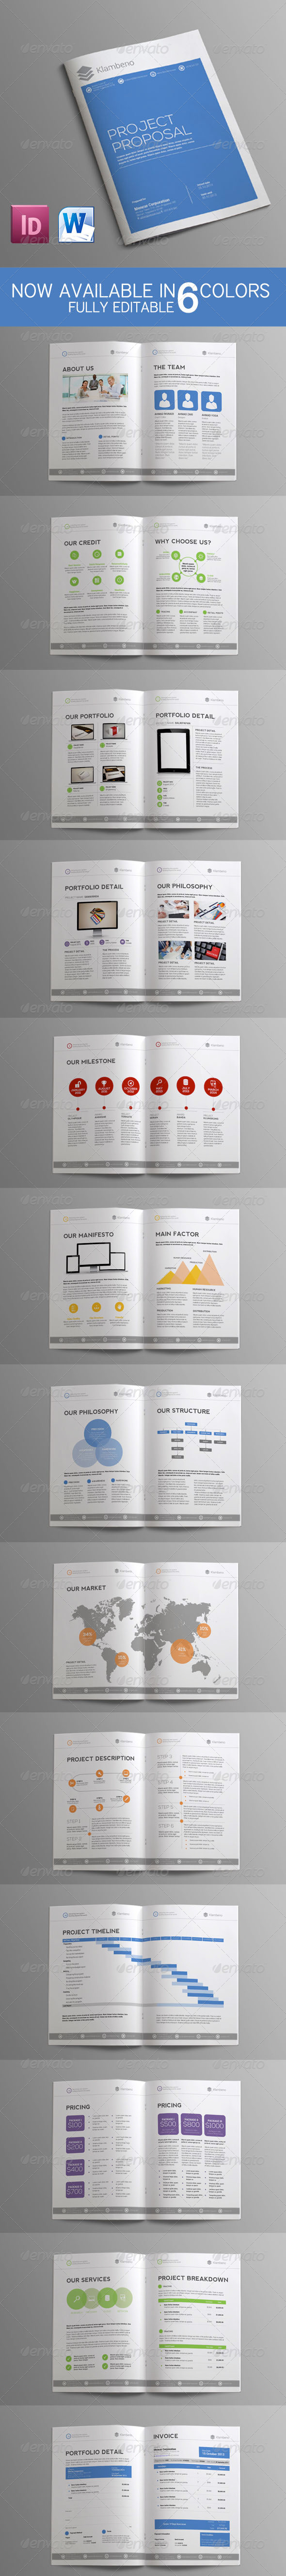 Sleman Clean Proposal Template Volume 6 - Proposals & Invoices Stationery